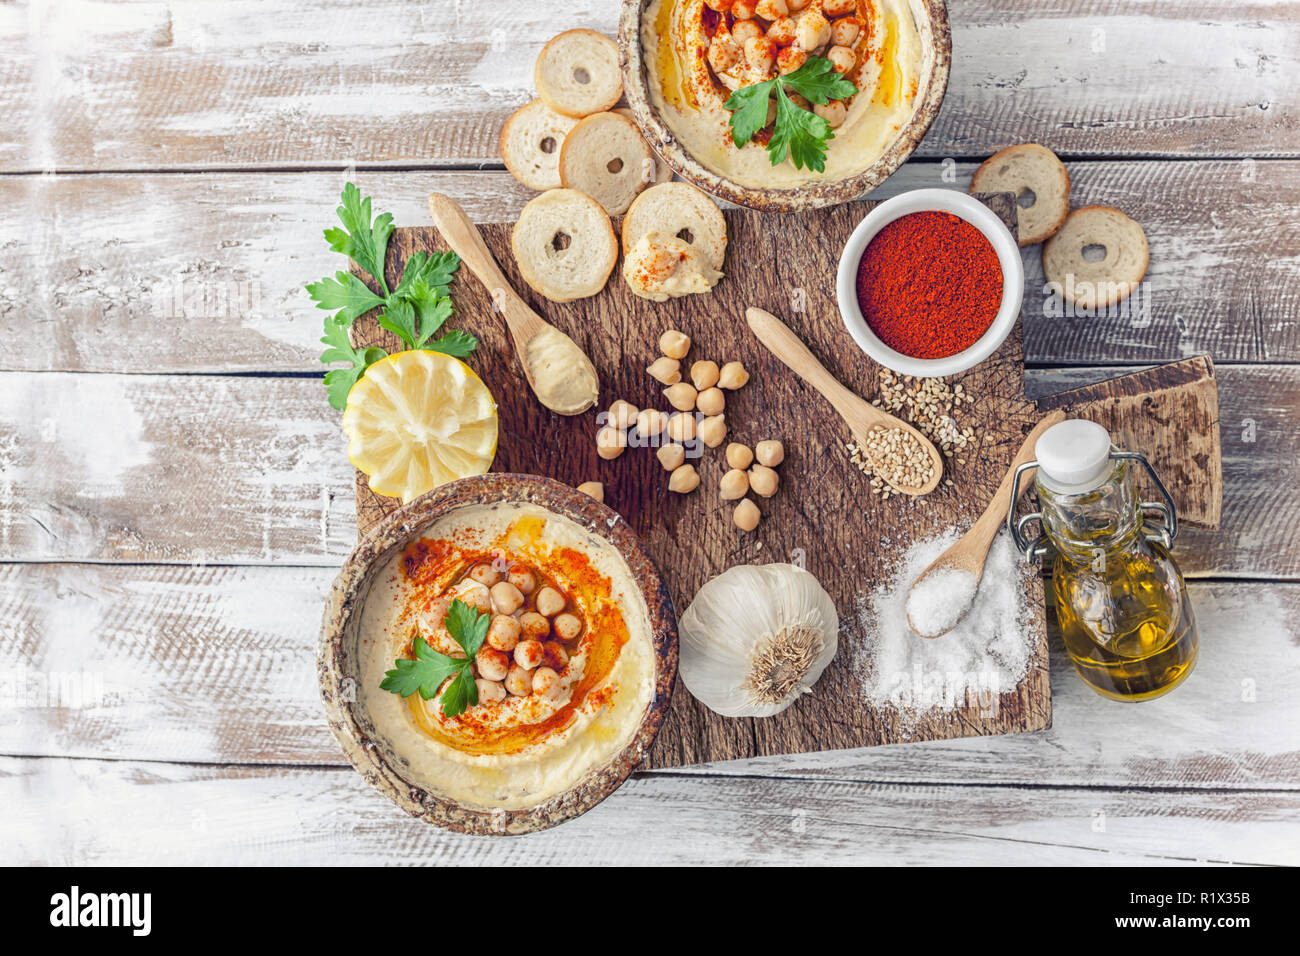 Islamic and Arabic foods and traditional backgrounds Stock